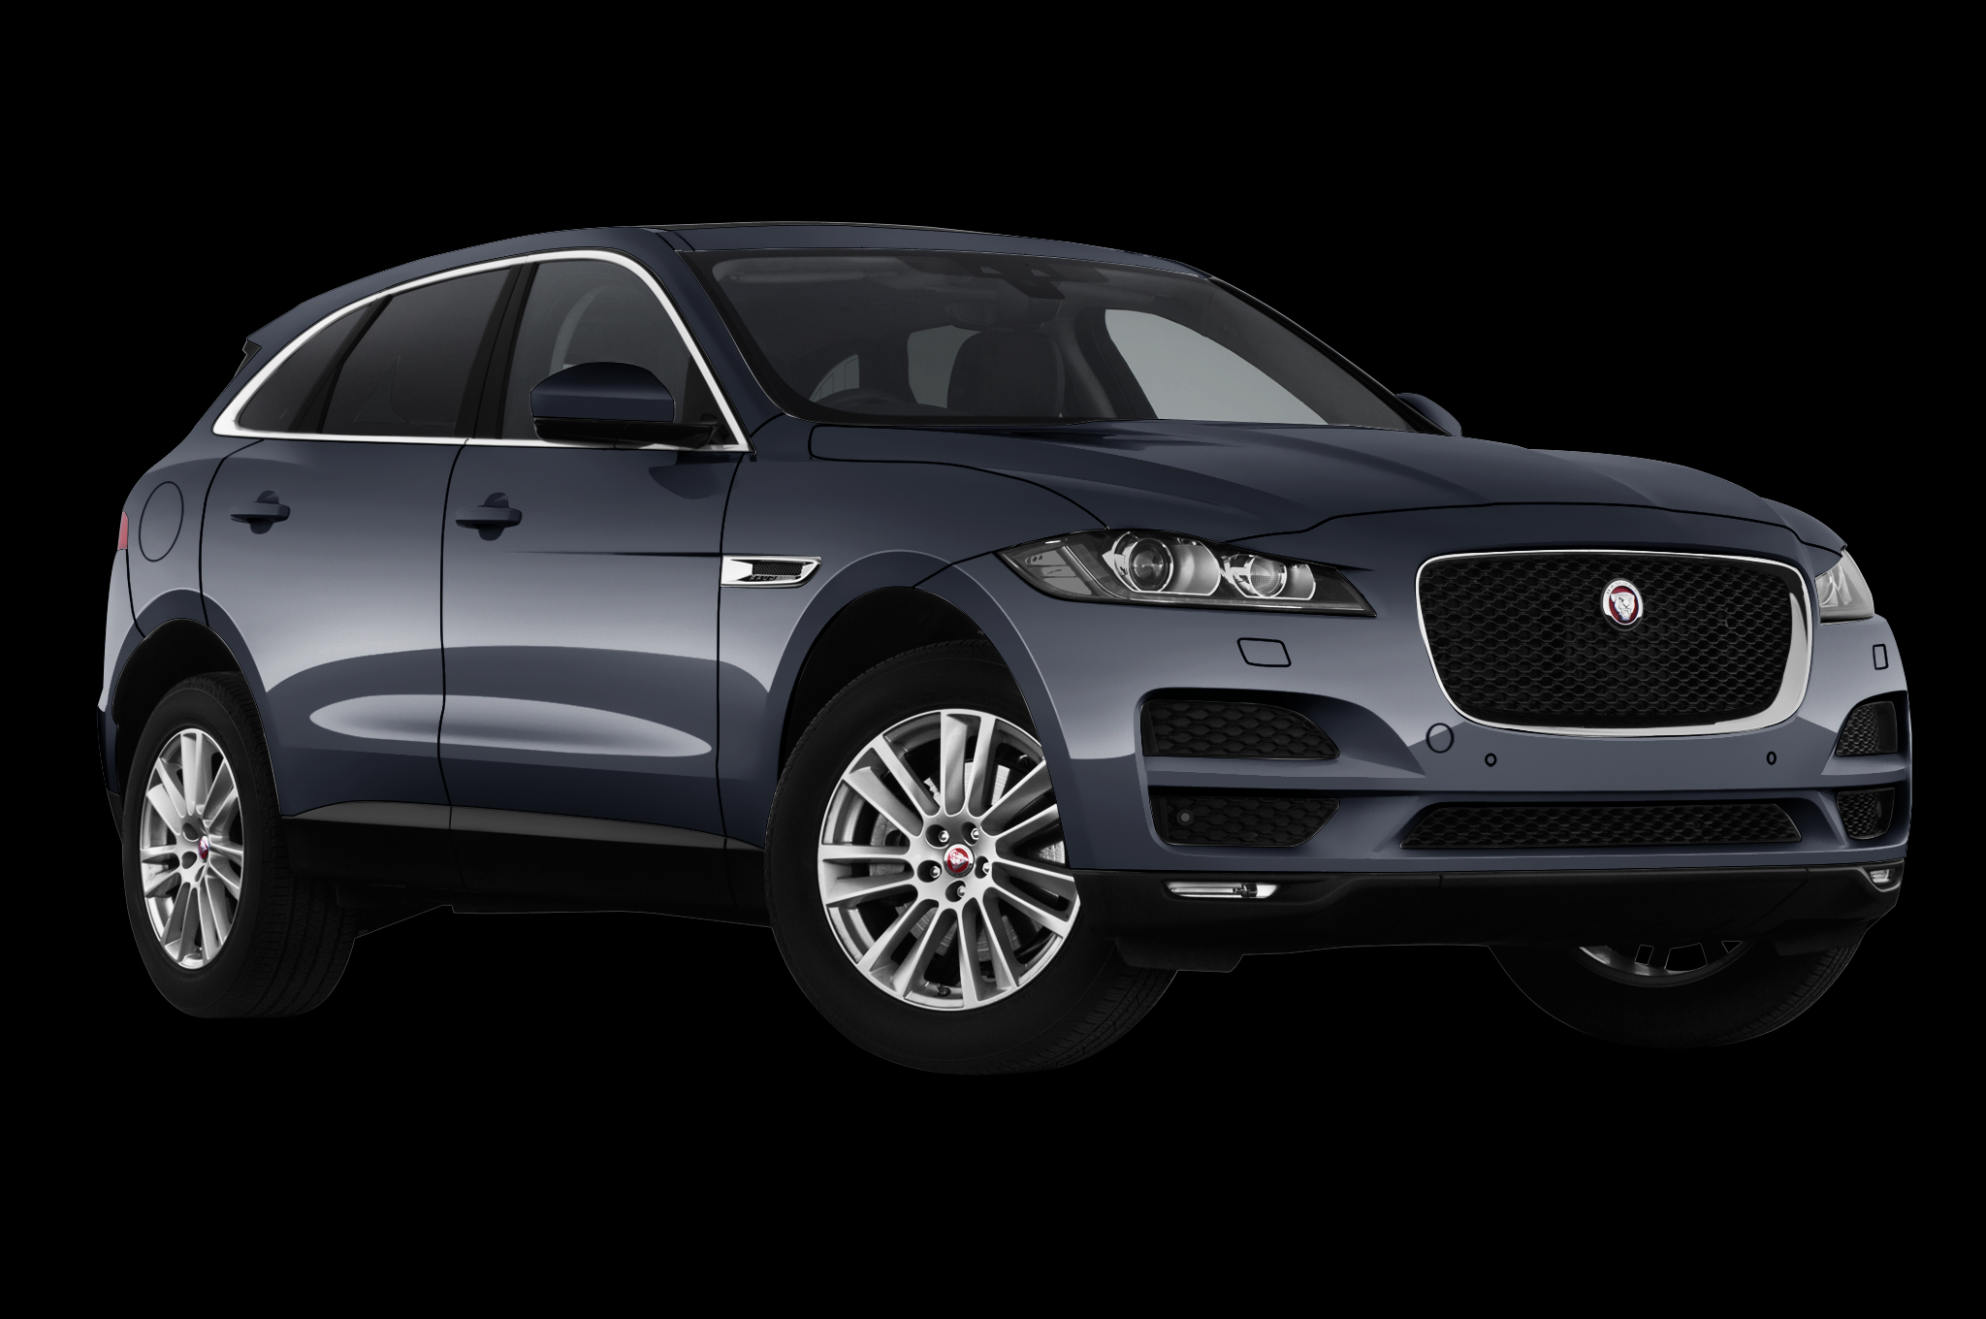 New Jaguar F-Pace Deals & Offers | save up to £6,6 | carwow